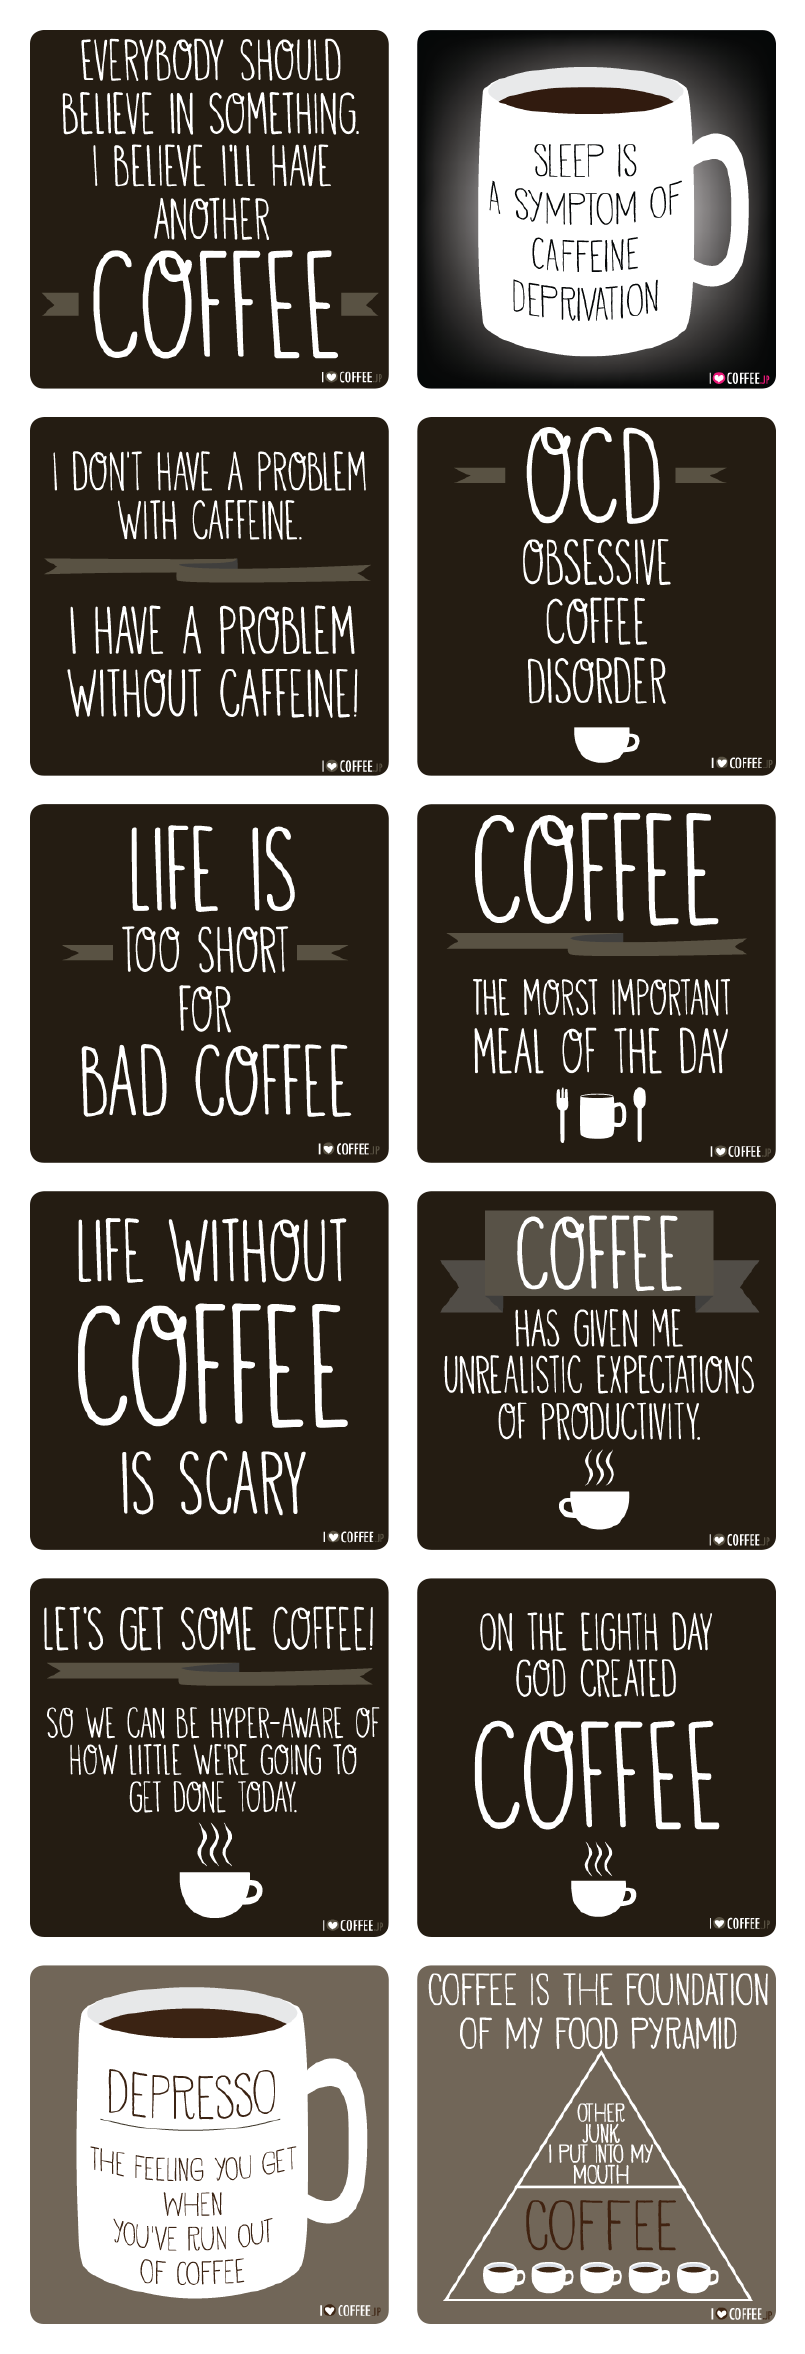 Coffee Quotes Via Tanna Coffee Like What You See Dont